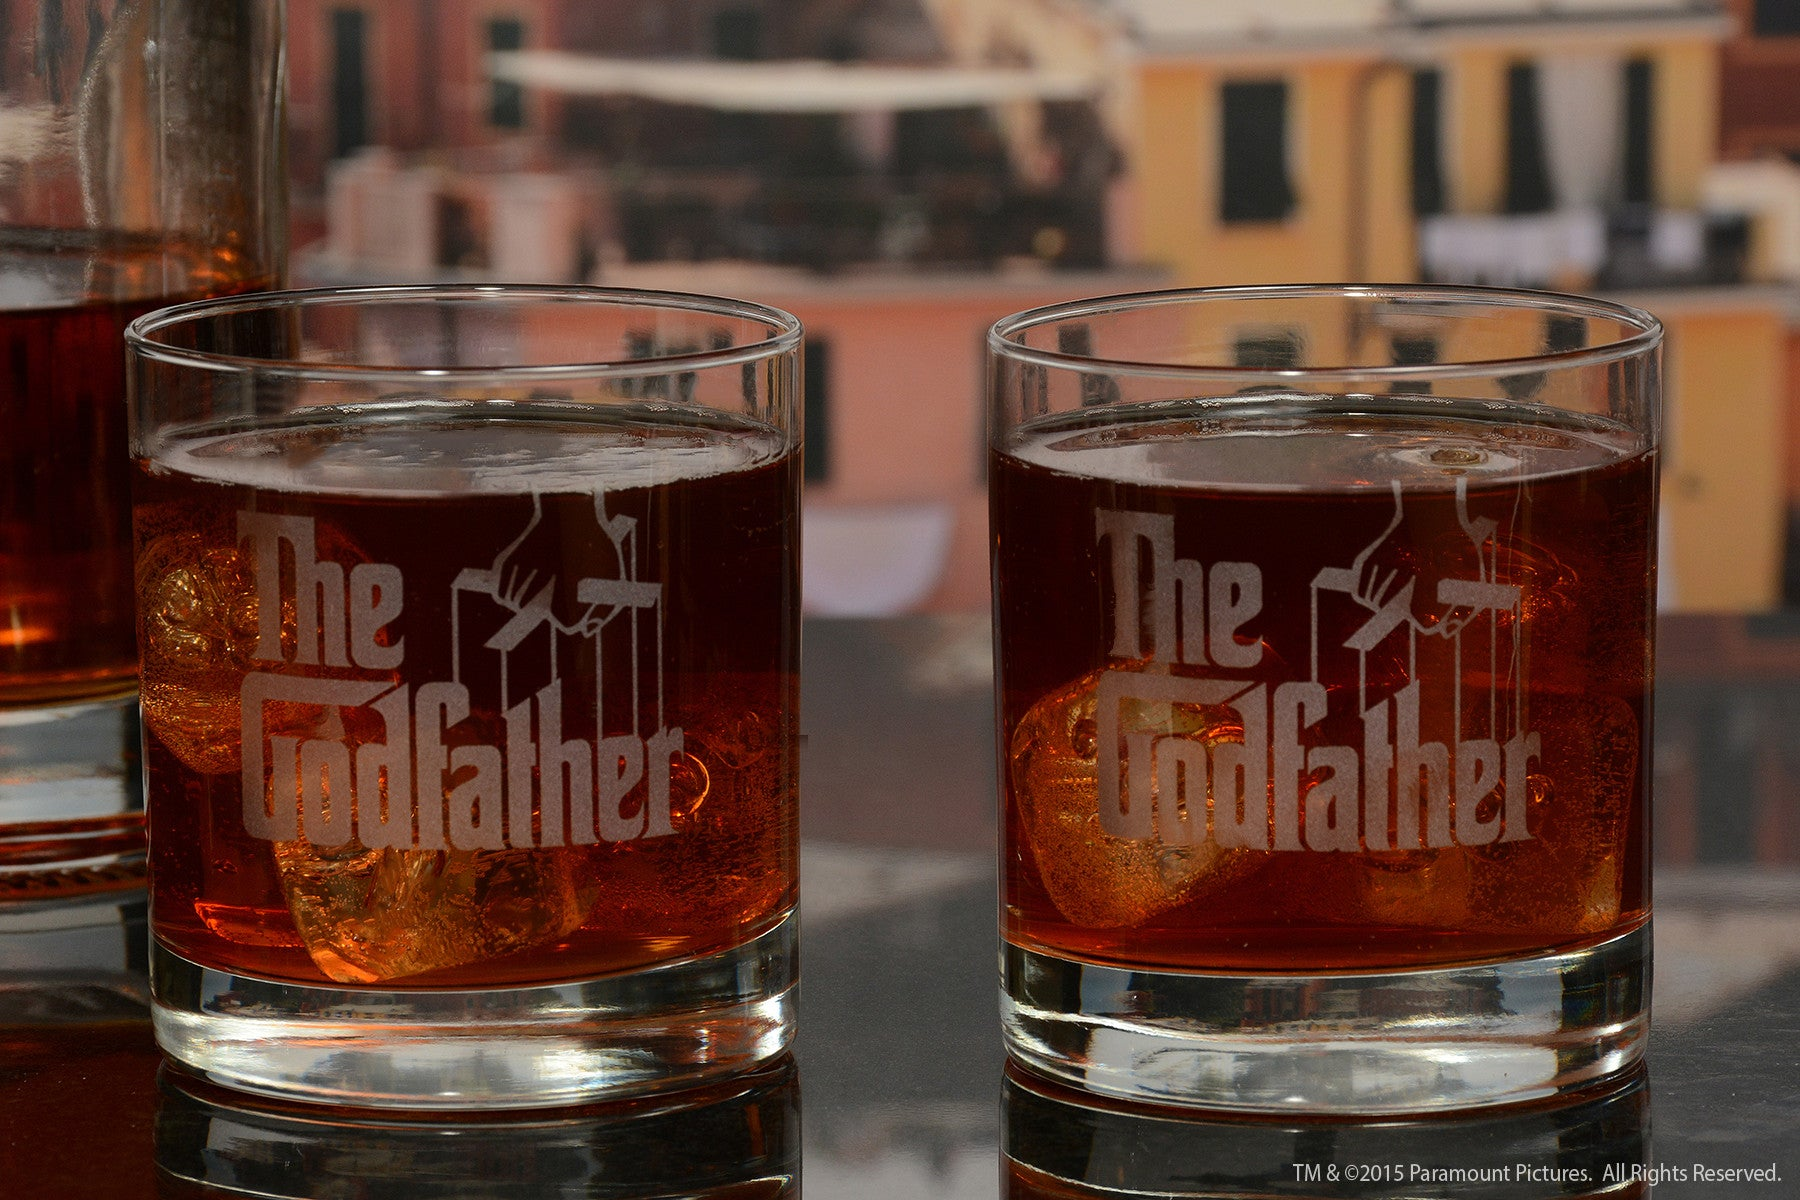 The Godfather Movie Whiskey Glasses 2pc Set